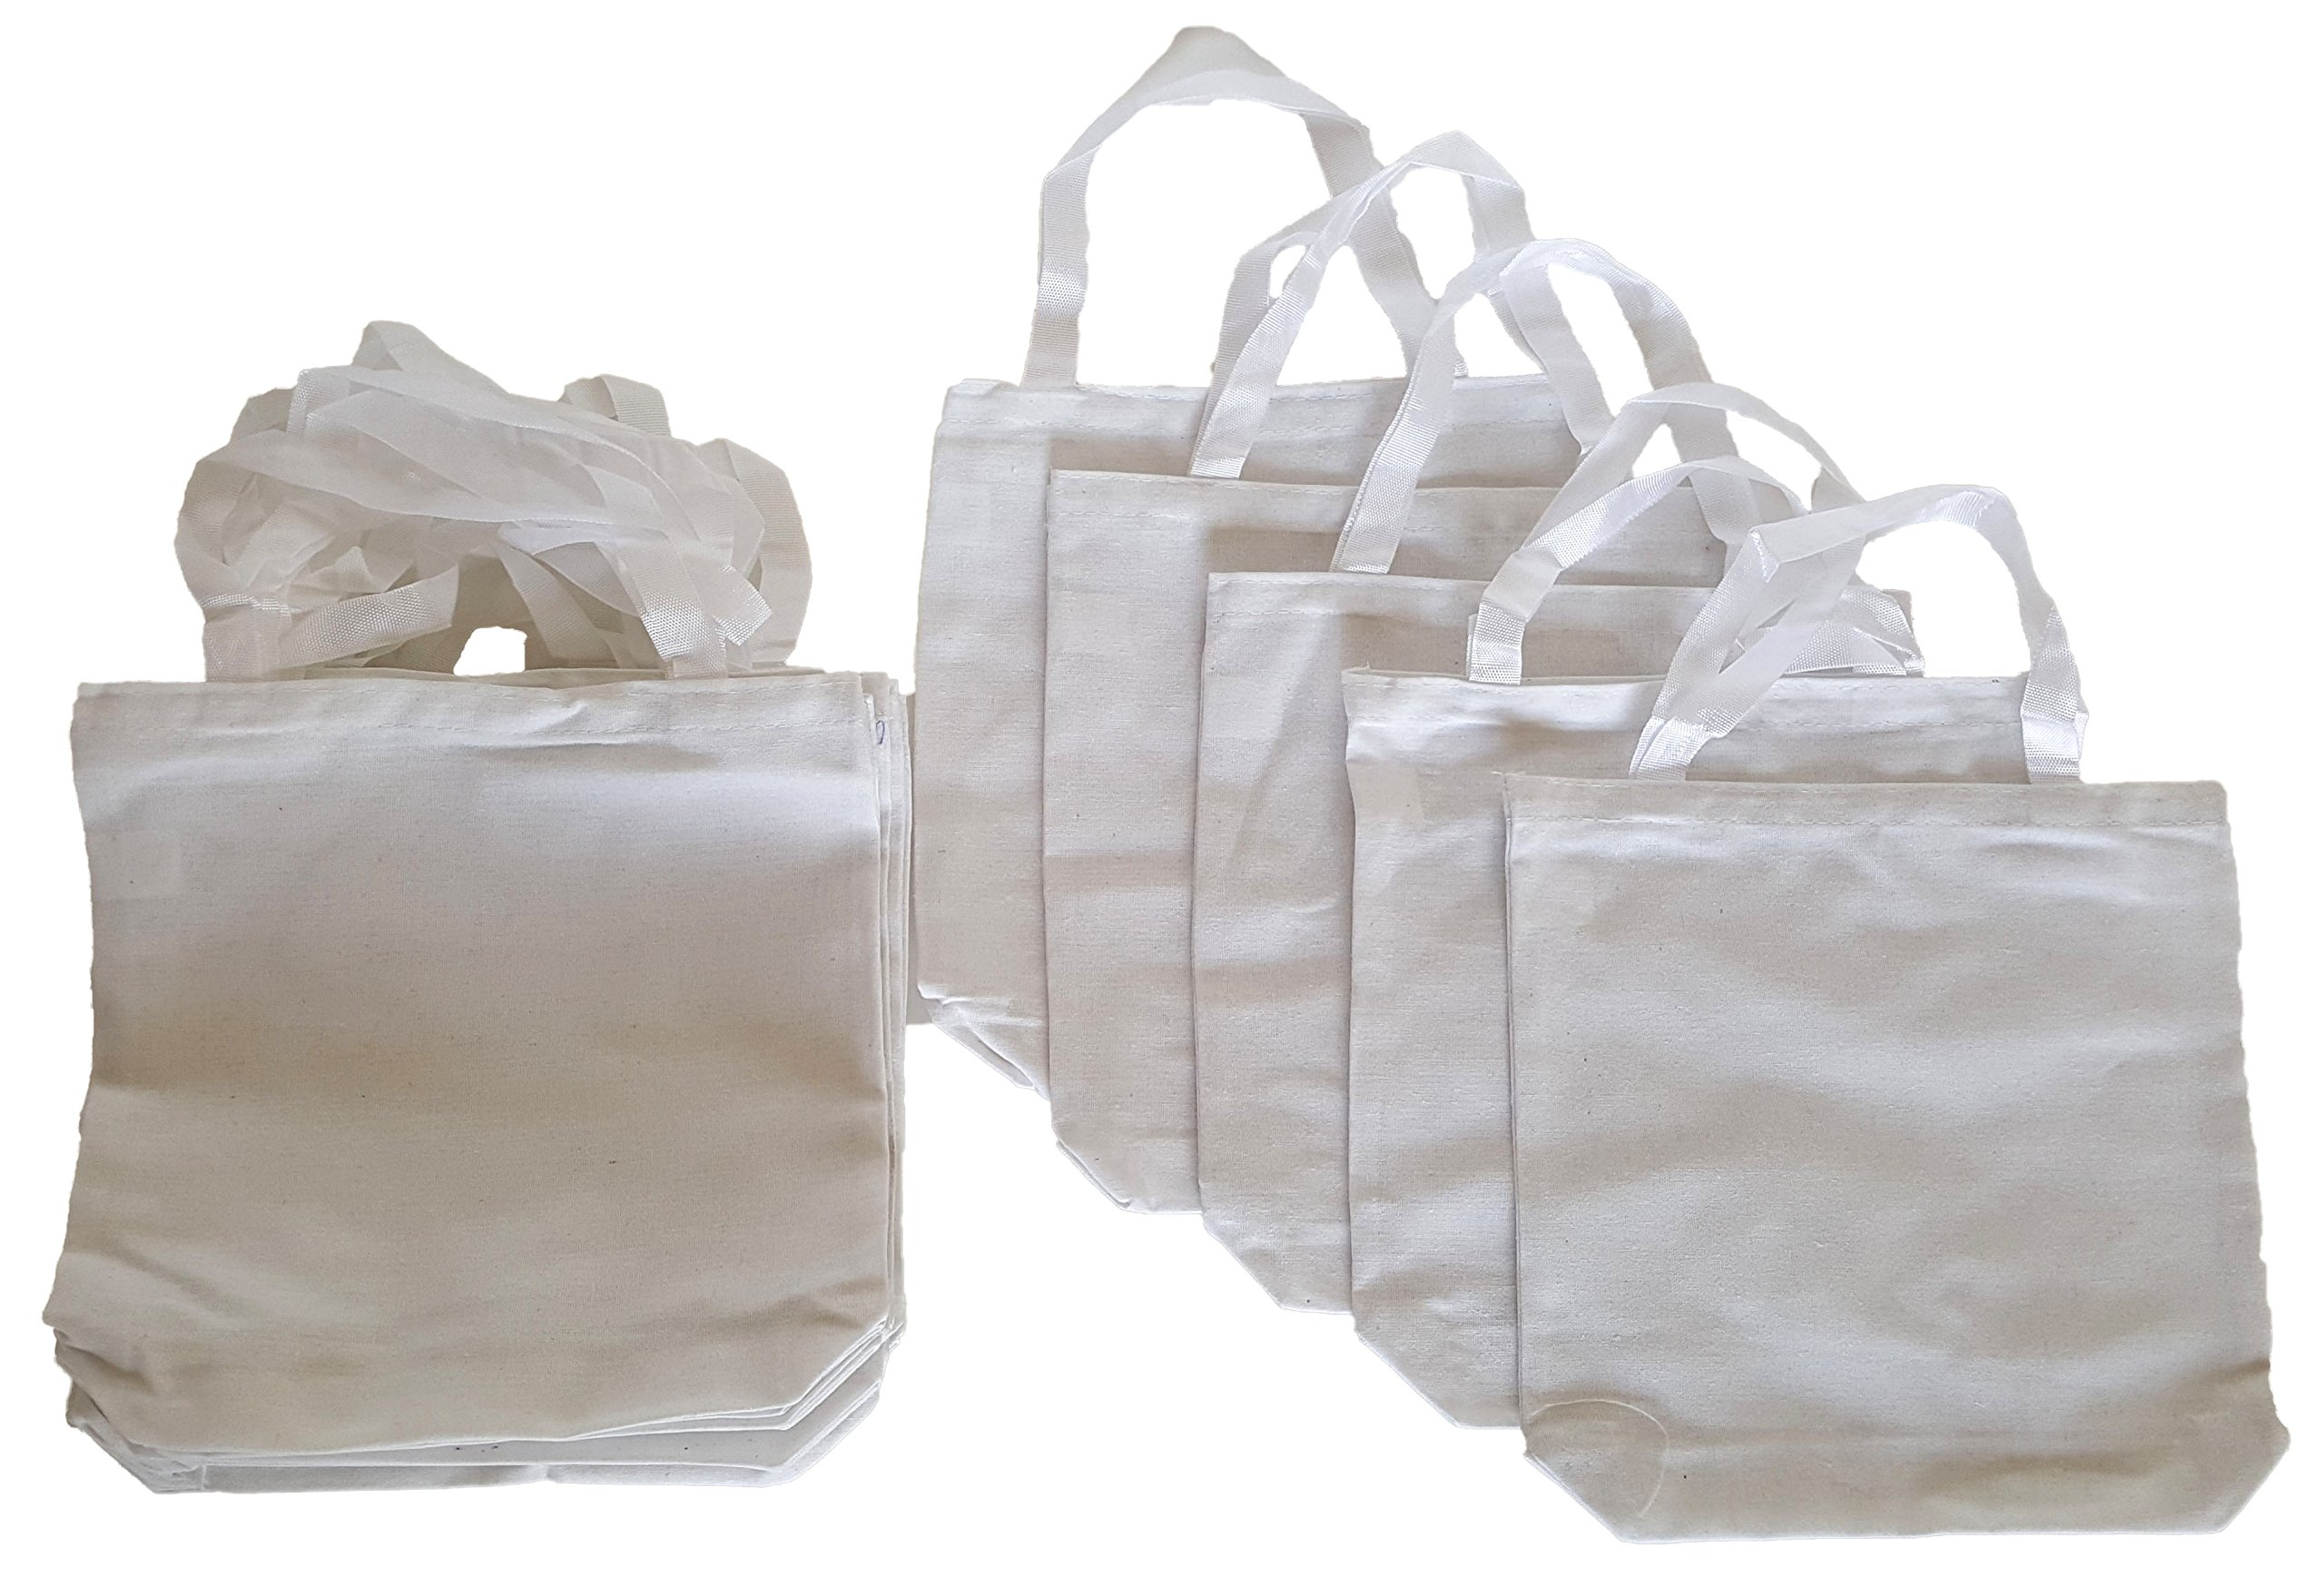 White Cotton Tote Bags, Party Goody Bags, To Go Bags. (12) by Dondor (Image #1)